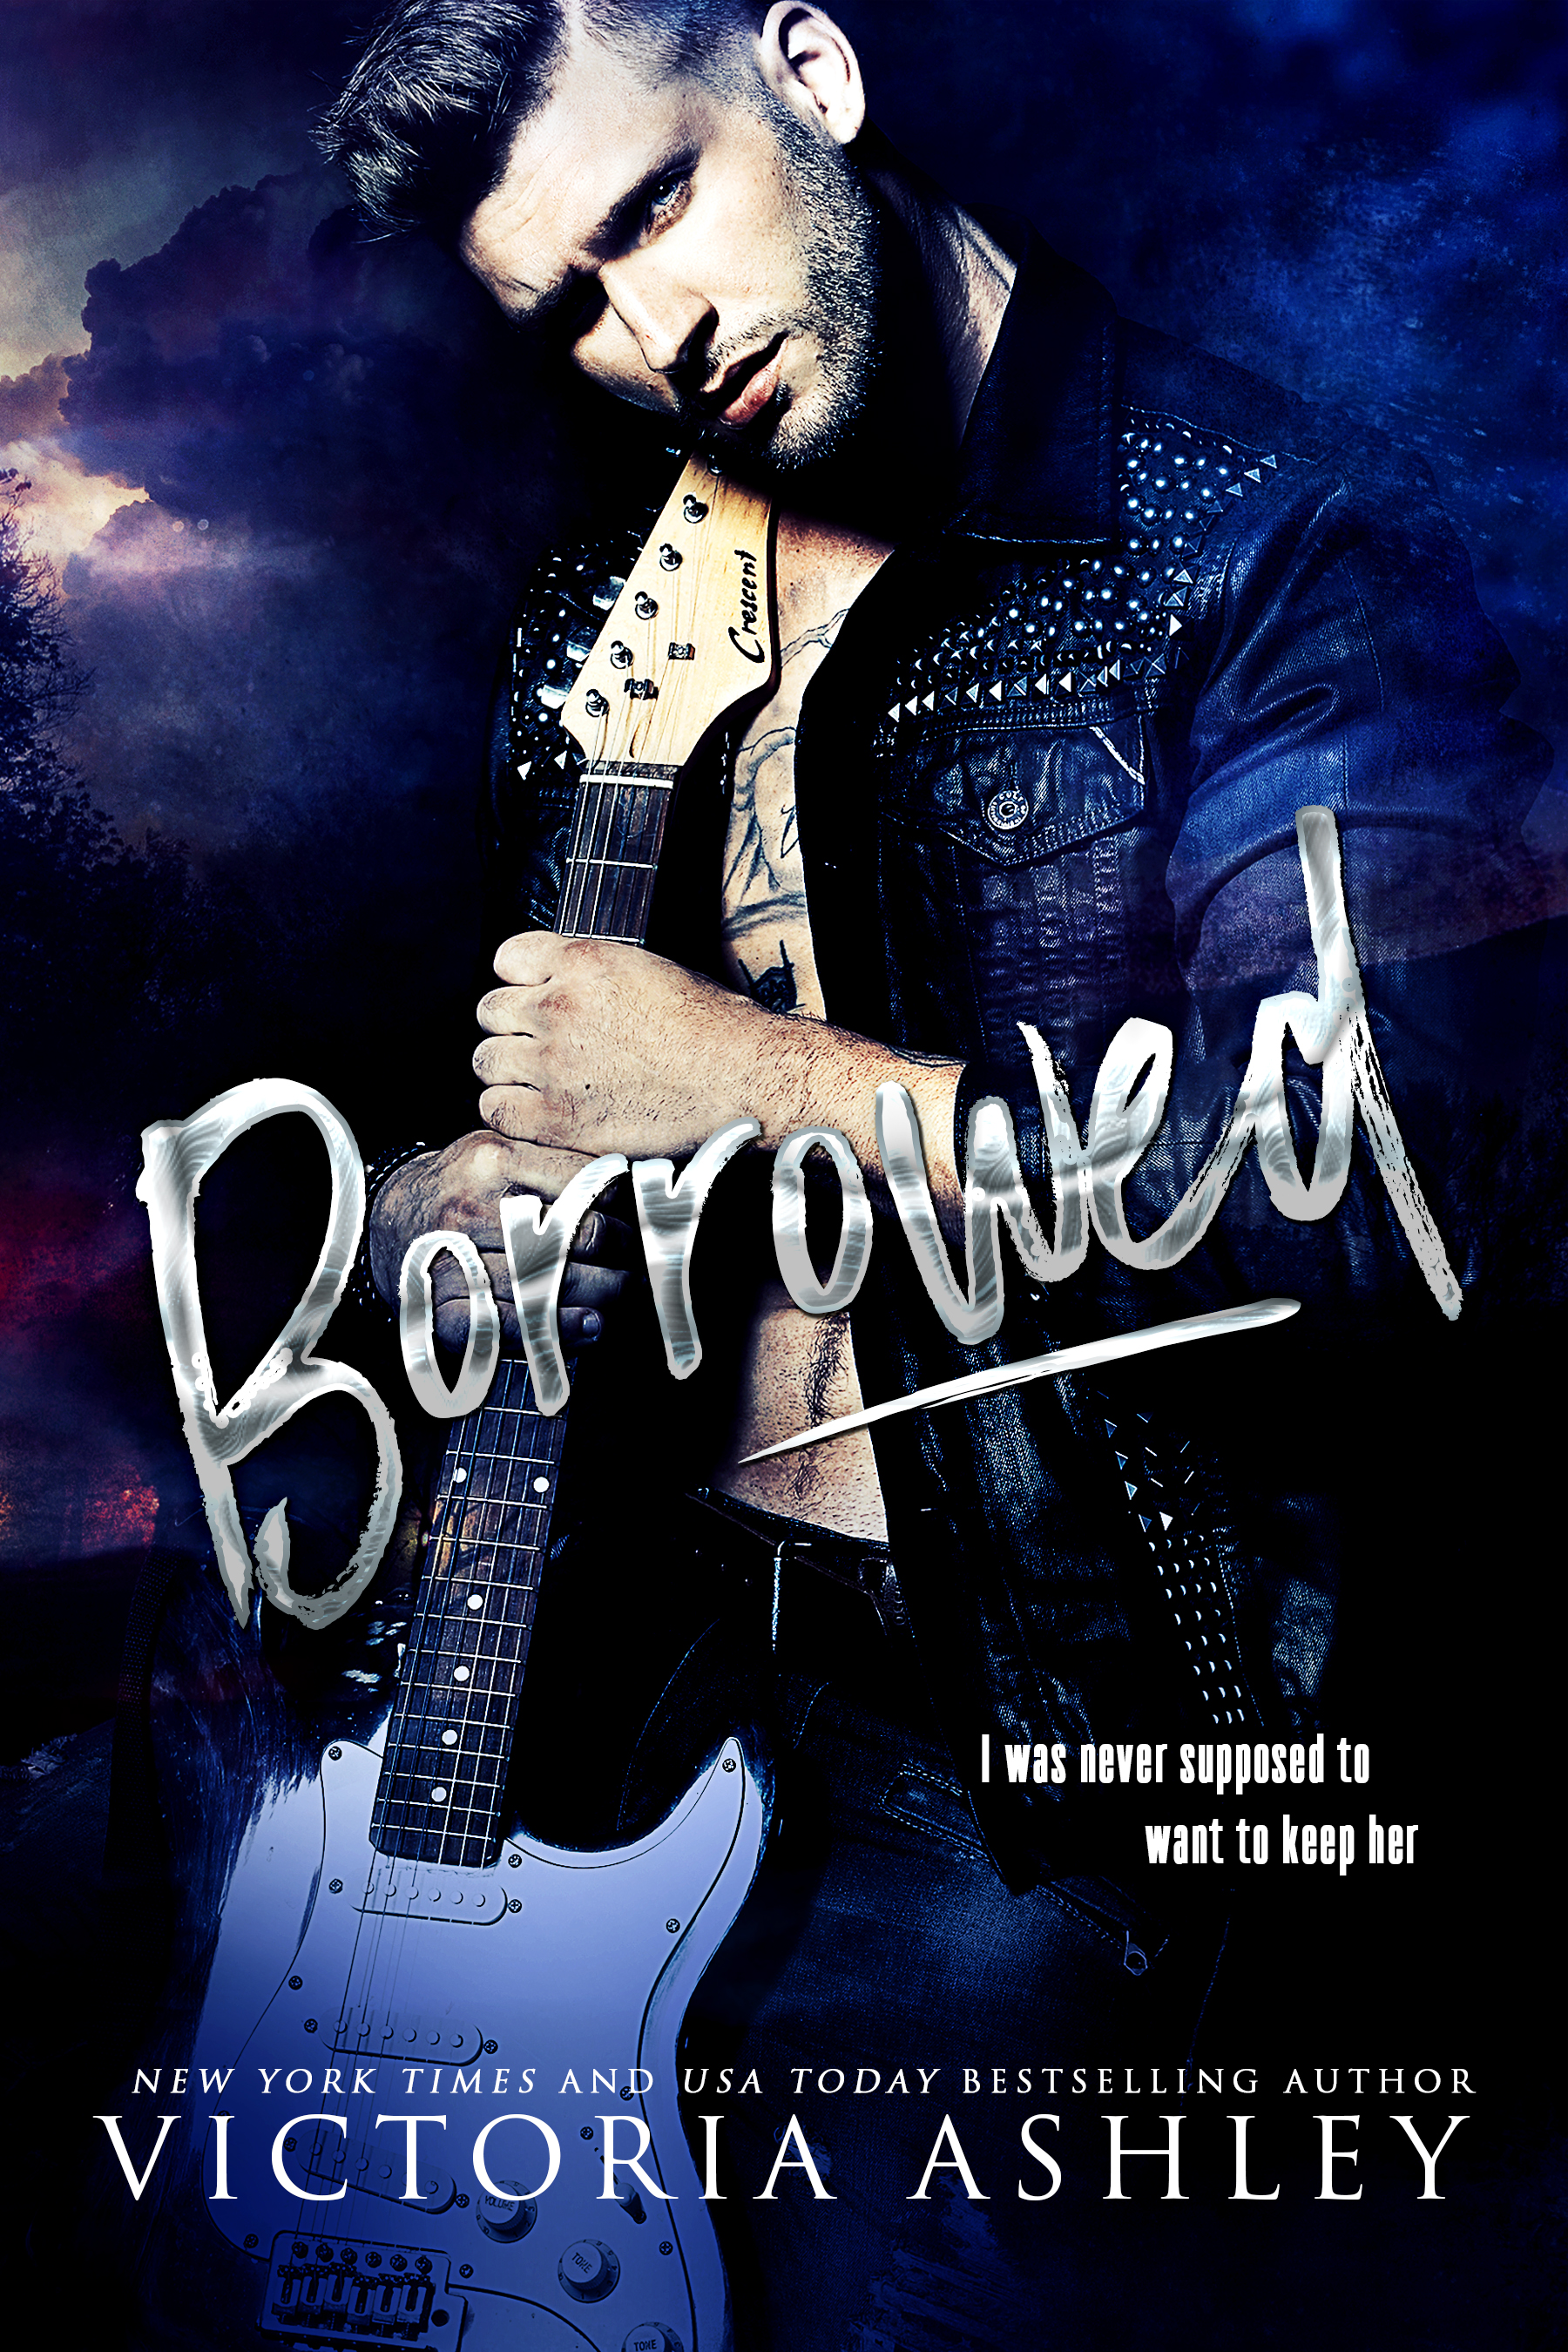 borrowed2-customdesign-JayAheer2017-eBook-complete